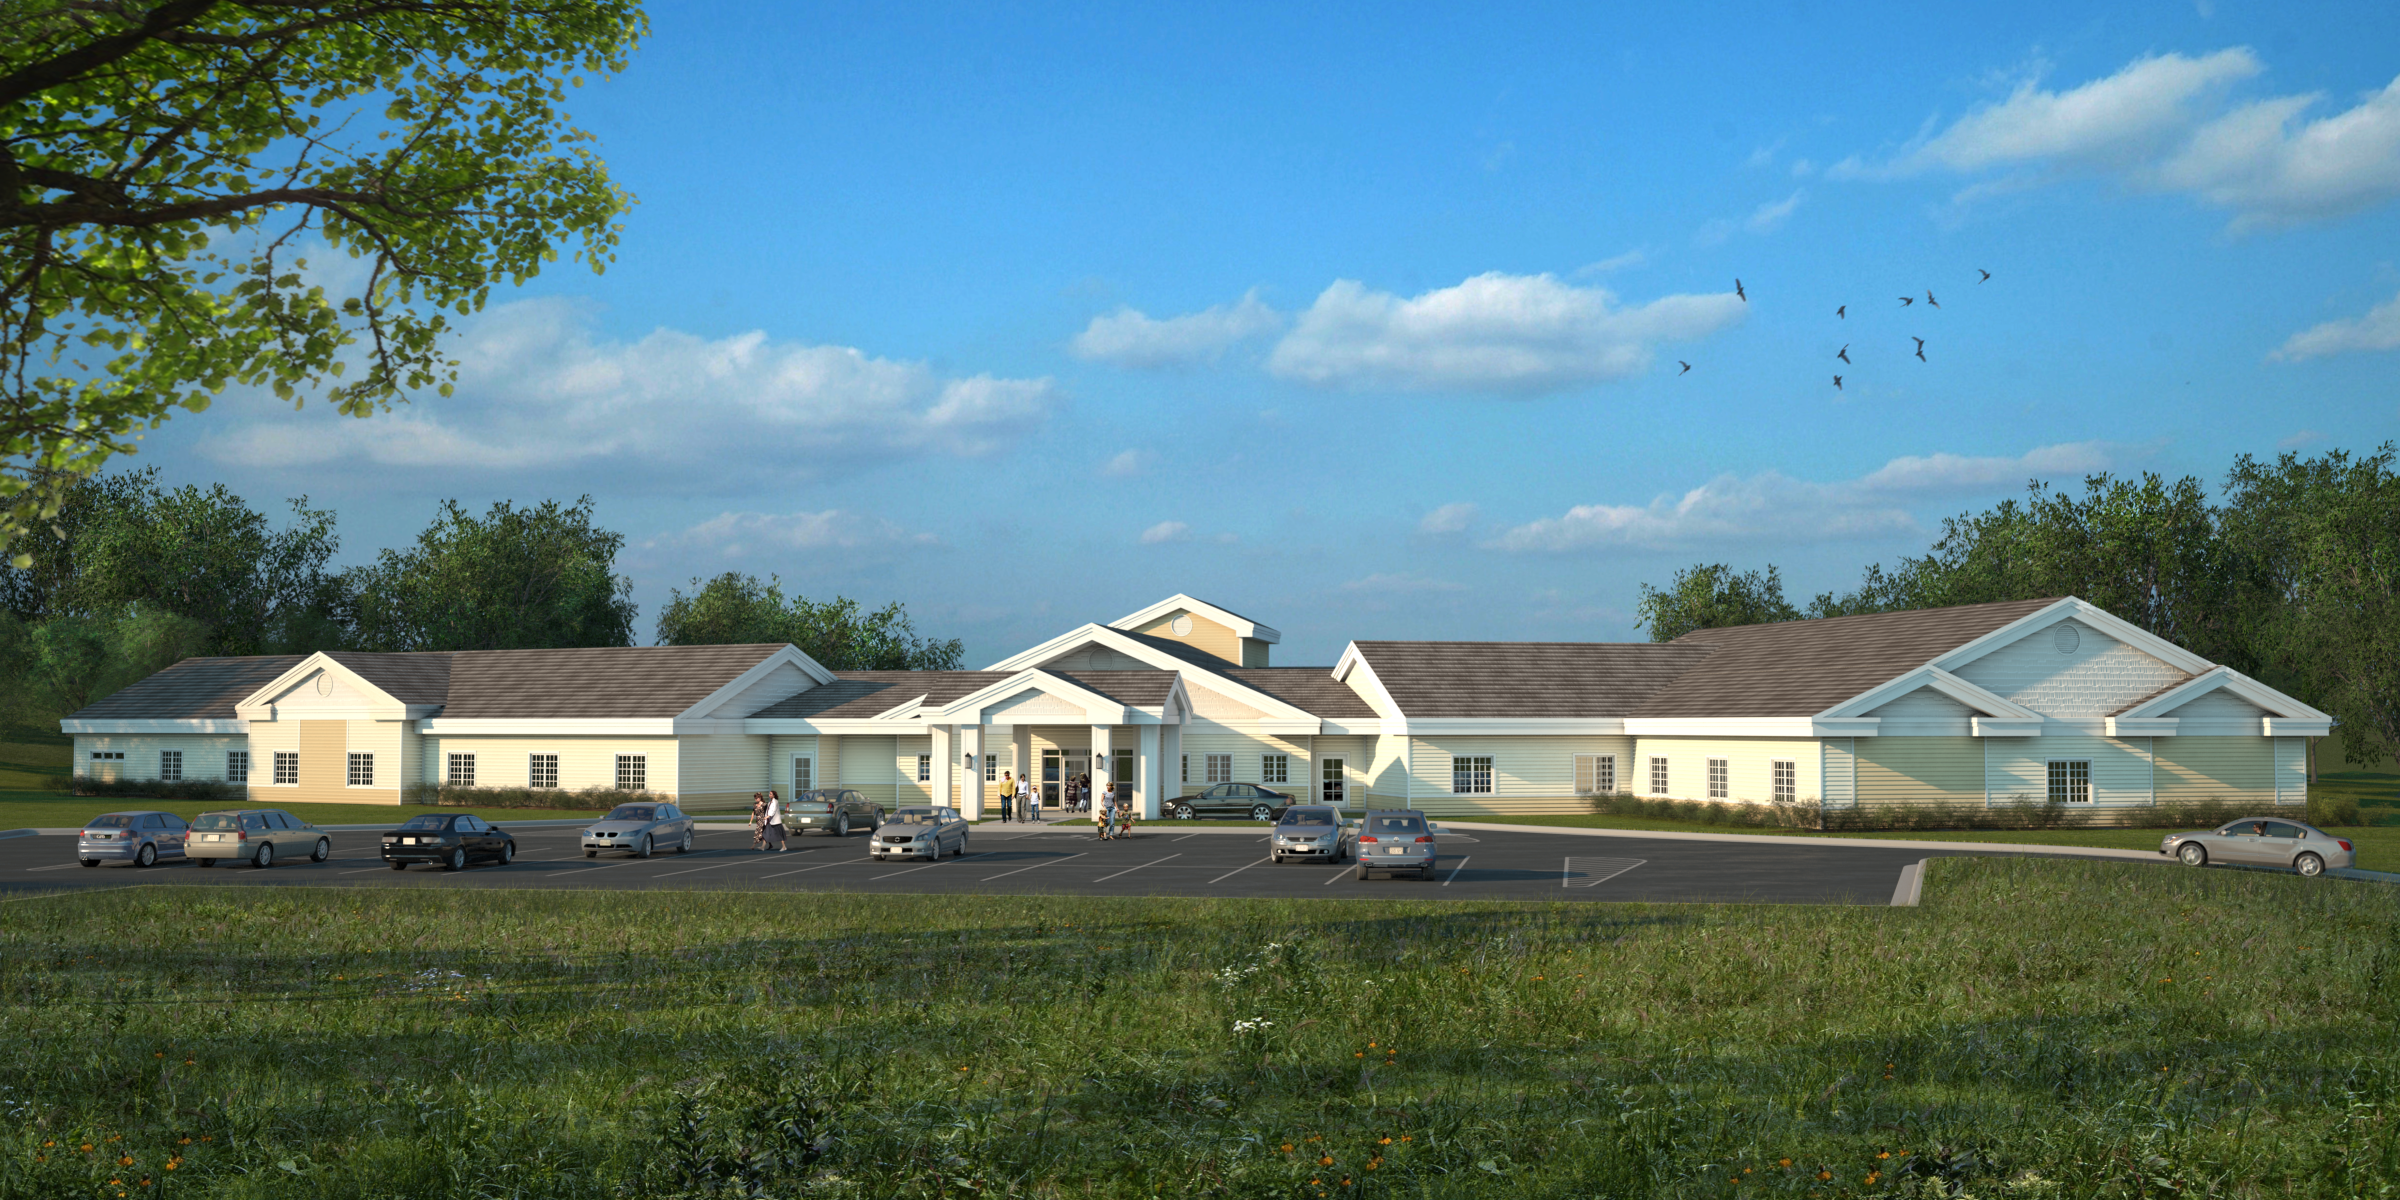 ADG_Colfax Healthcare Facility_01_2400px.png